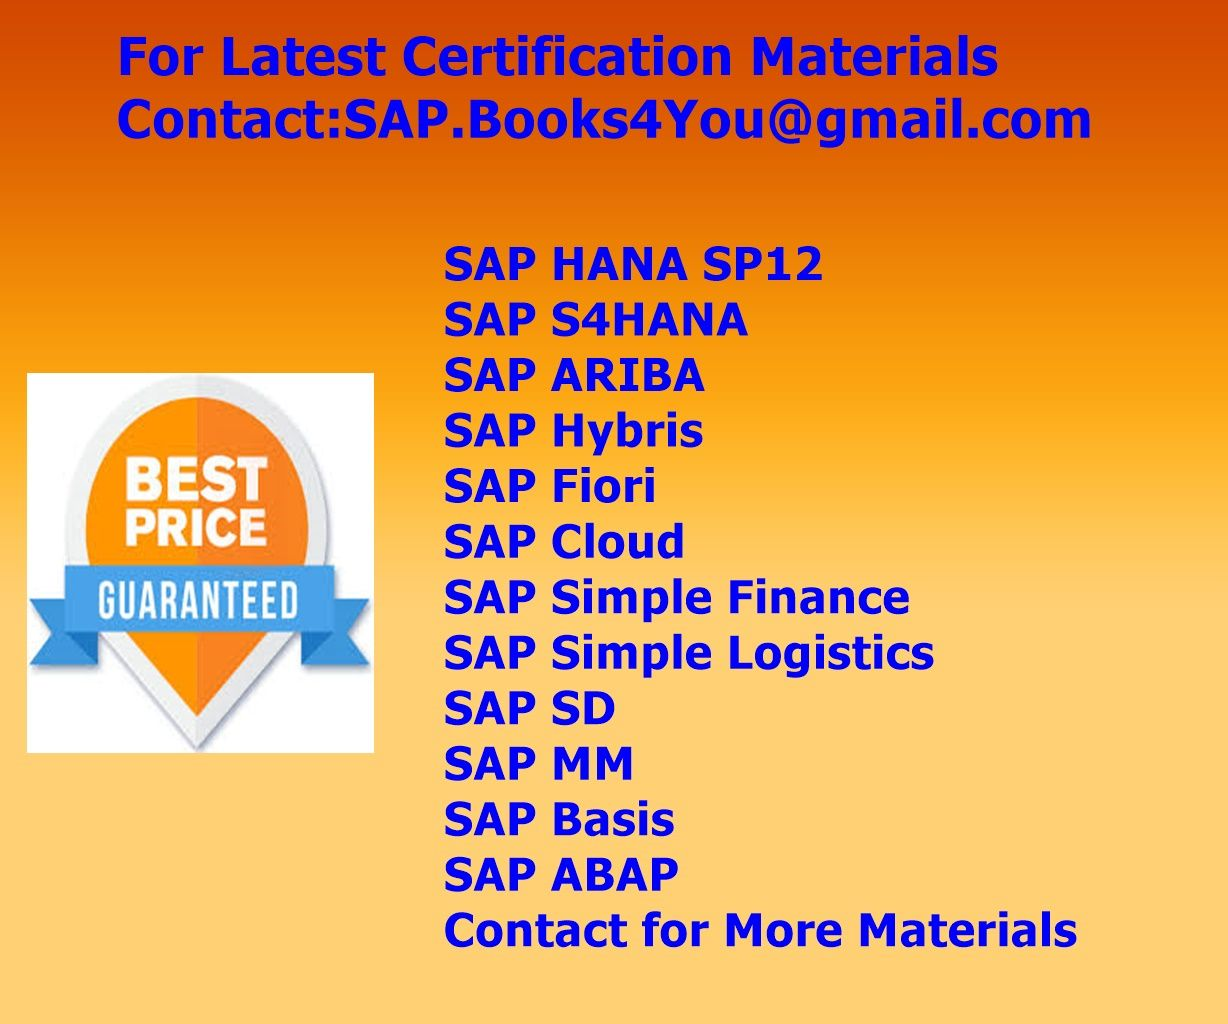 Pin by sap ebooks on sap basis 74 material pinterest study materials fandeluxe Choice Image